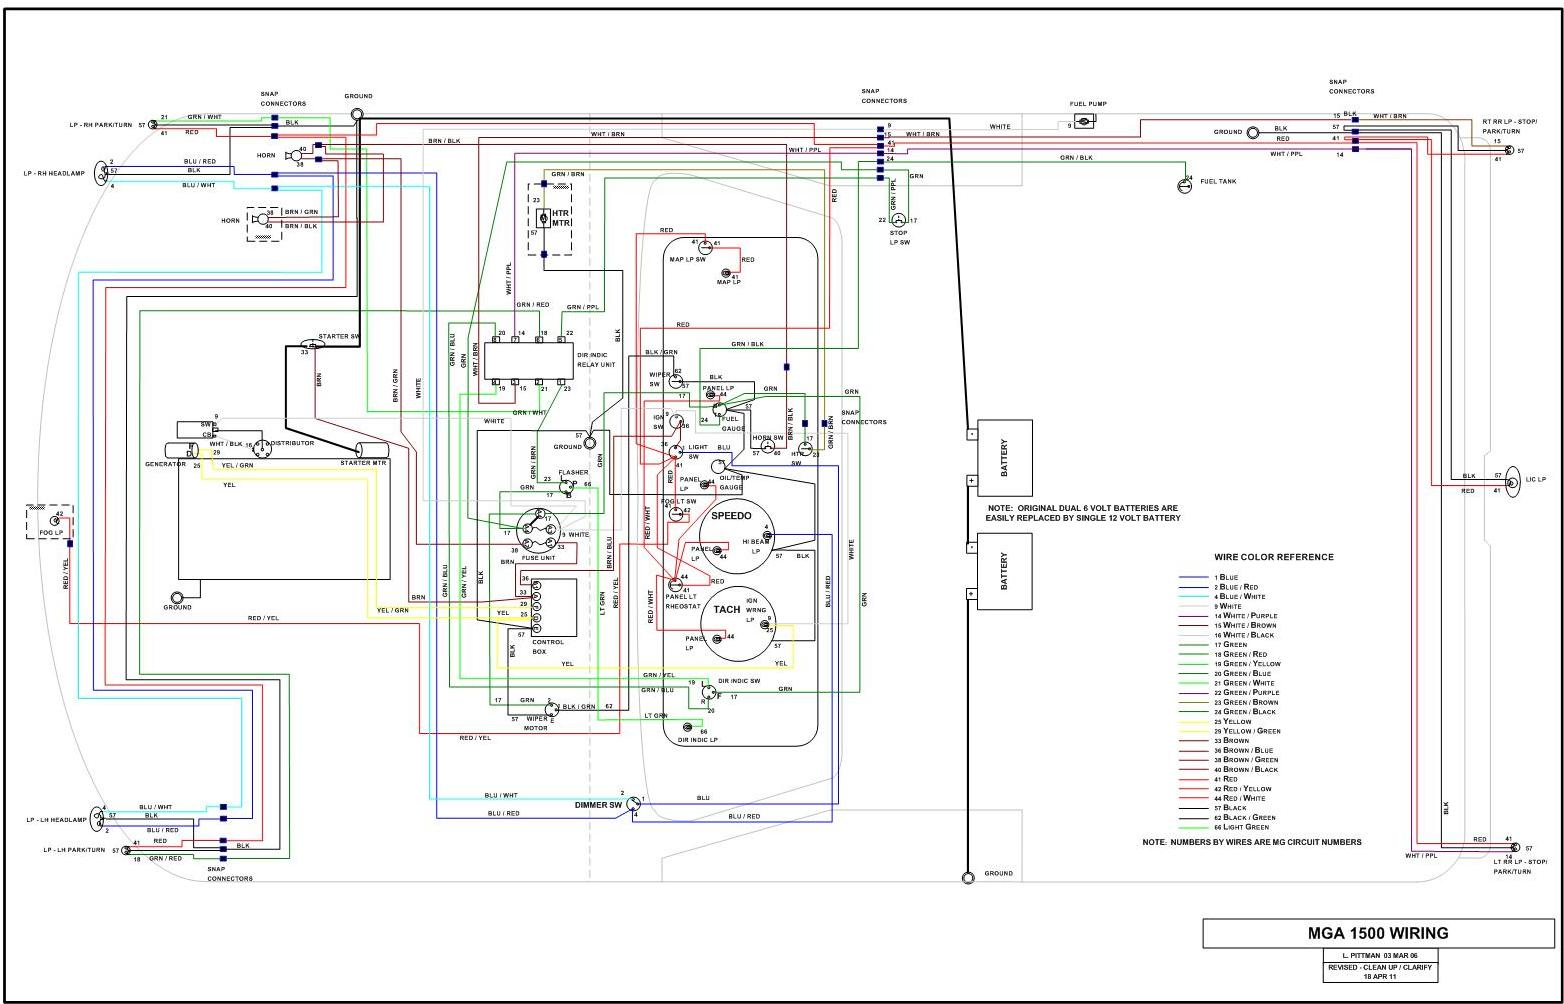 MGA 1500 Wiring mga subassembly wiring mgb wiring harness diagram at sewacar.co